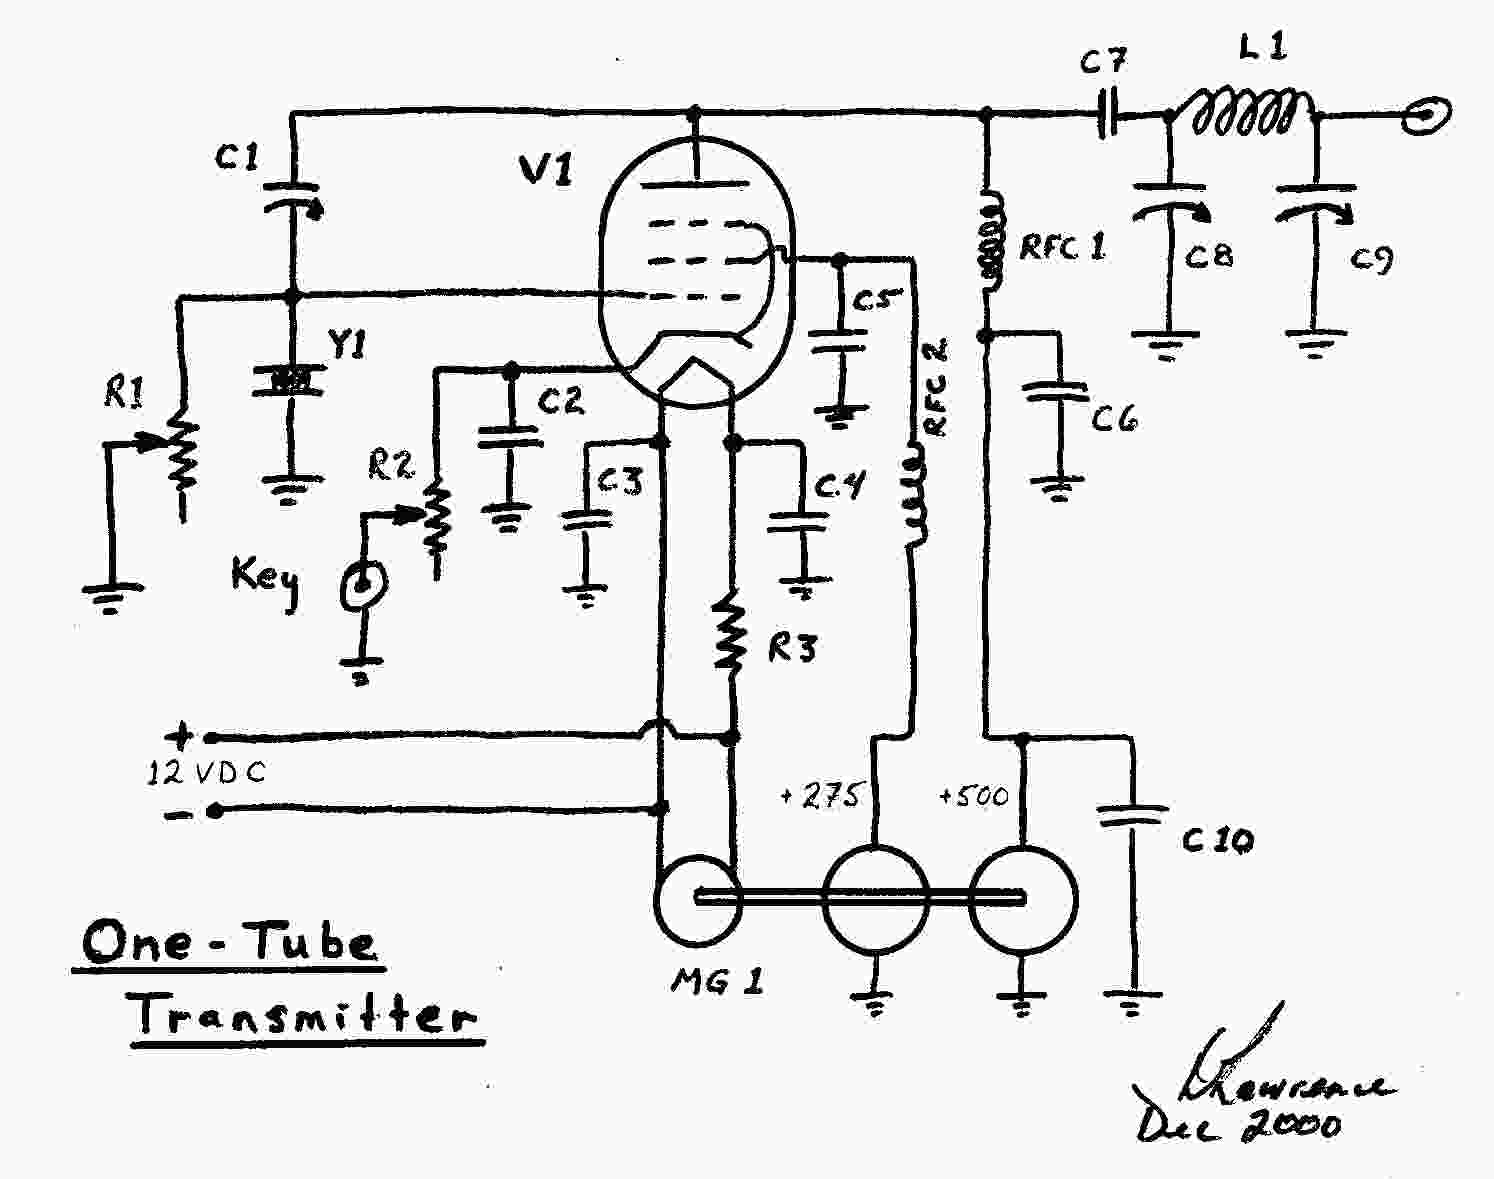 hight resolution of one tube tx schematic